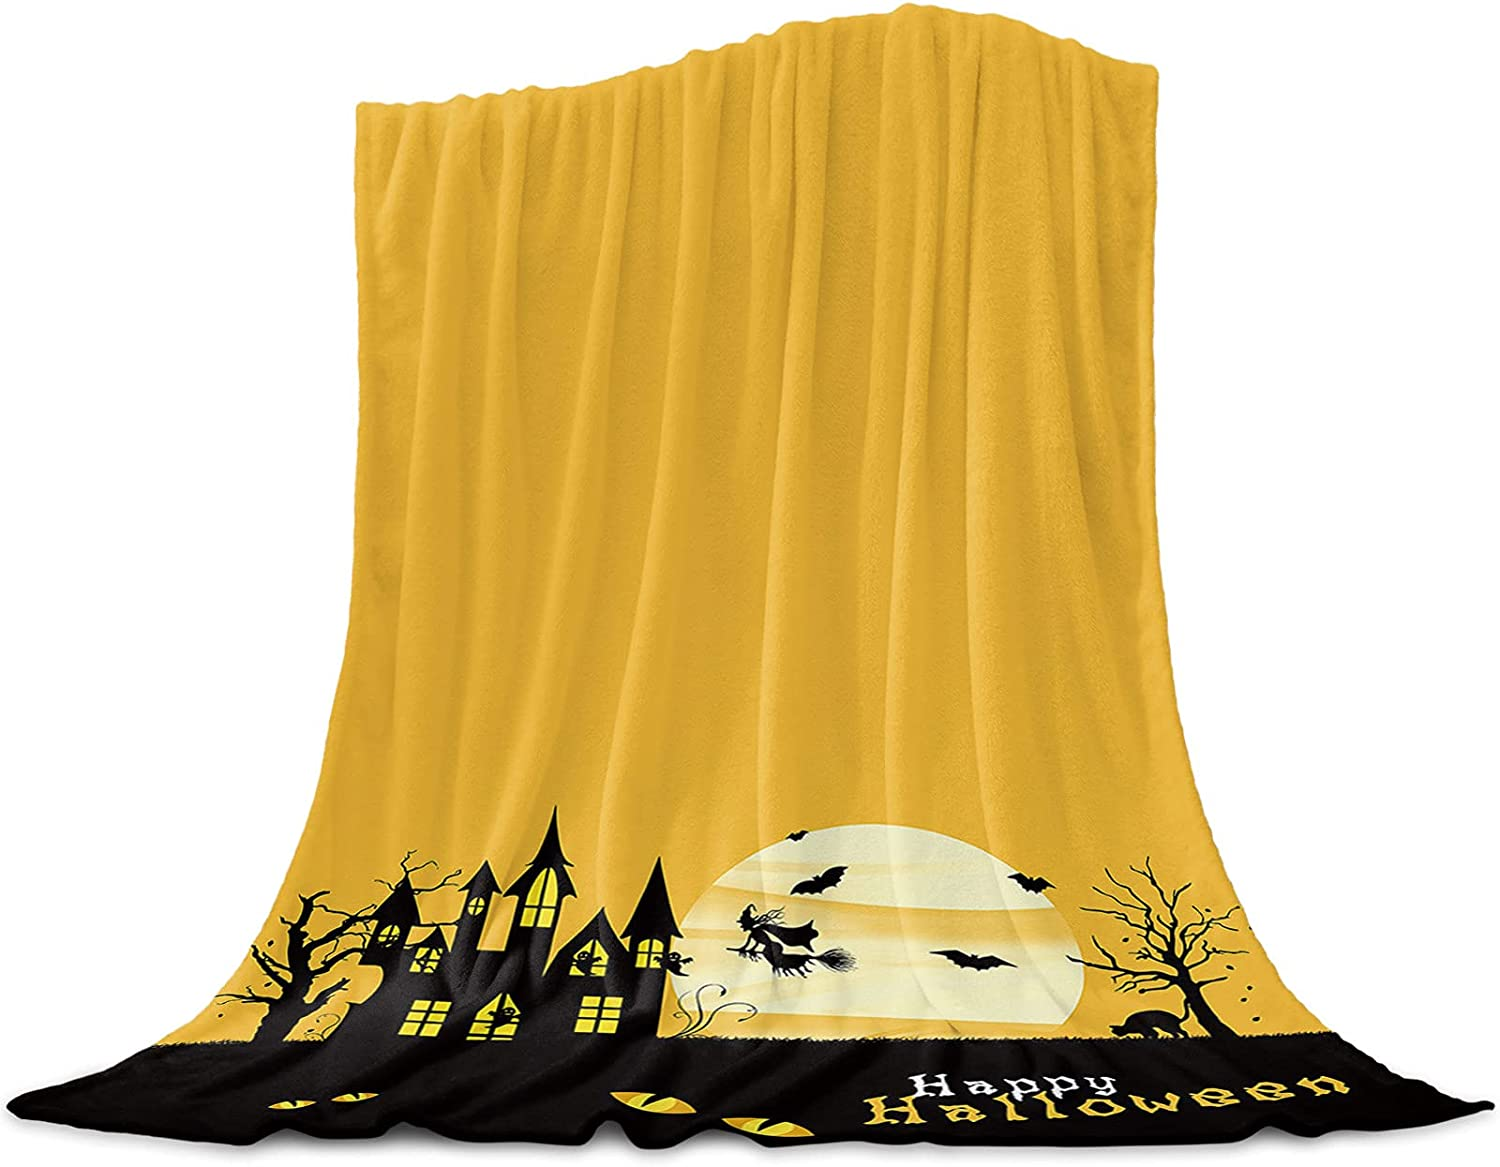 Cloud Dream Home Flannel Fleece Hallo Max 77% OFF Blanket Throw Quantity limited inches 40x60